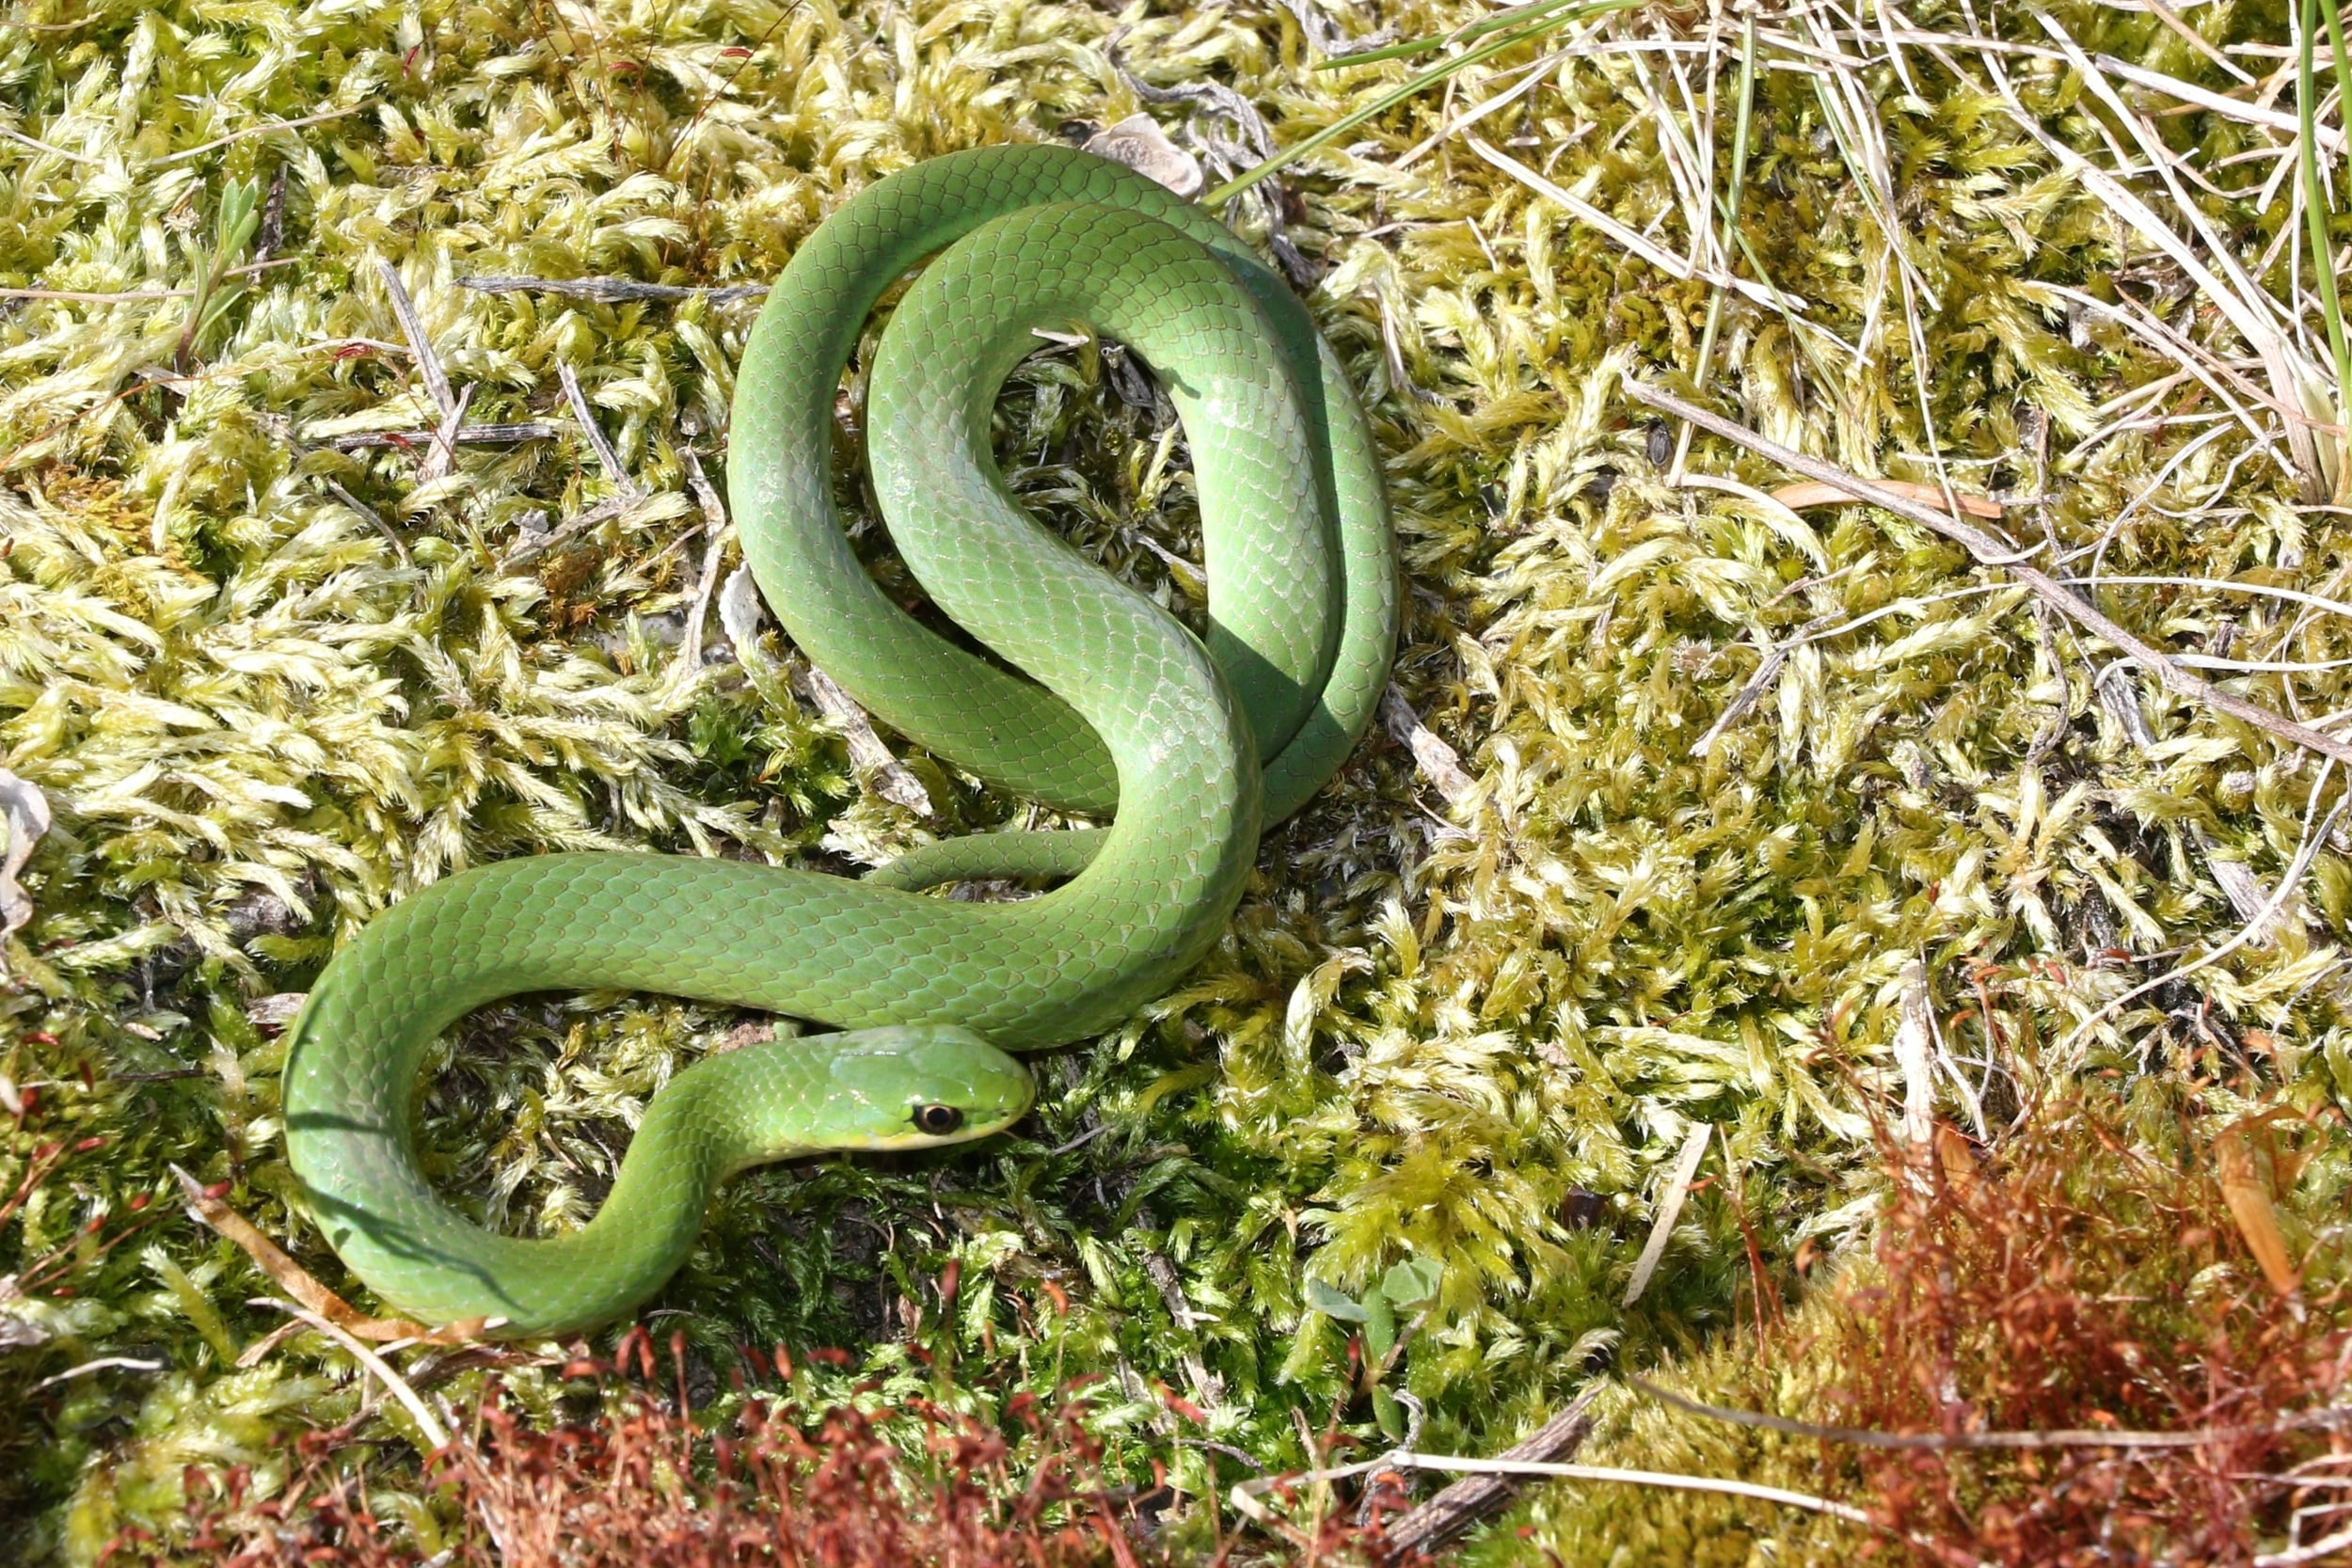 Smooth Greensnake - I find these in the Poconos a lot. They are a snake I always look forward to.